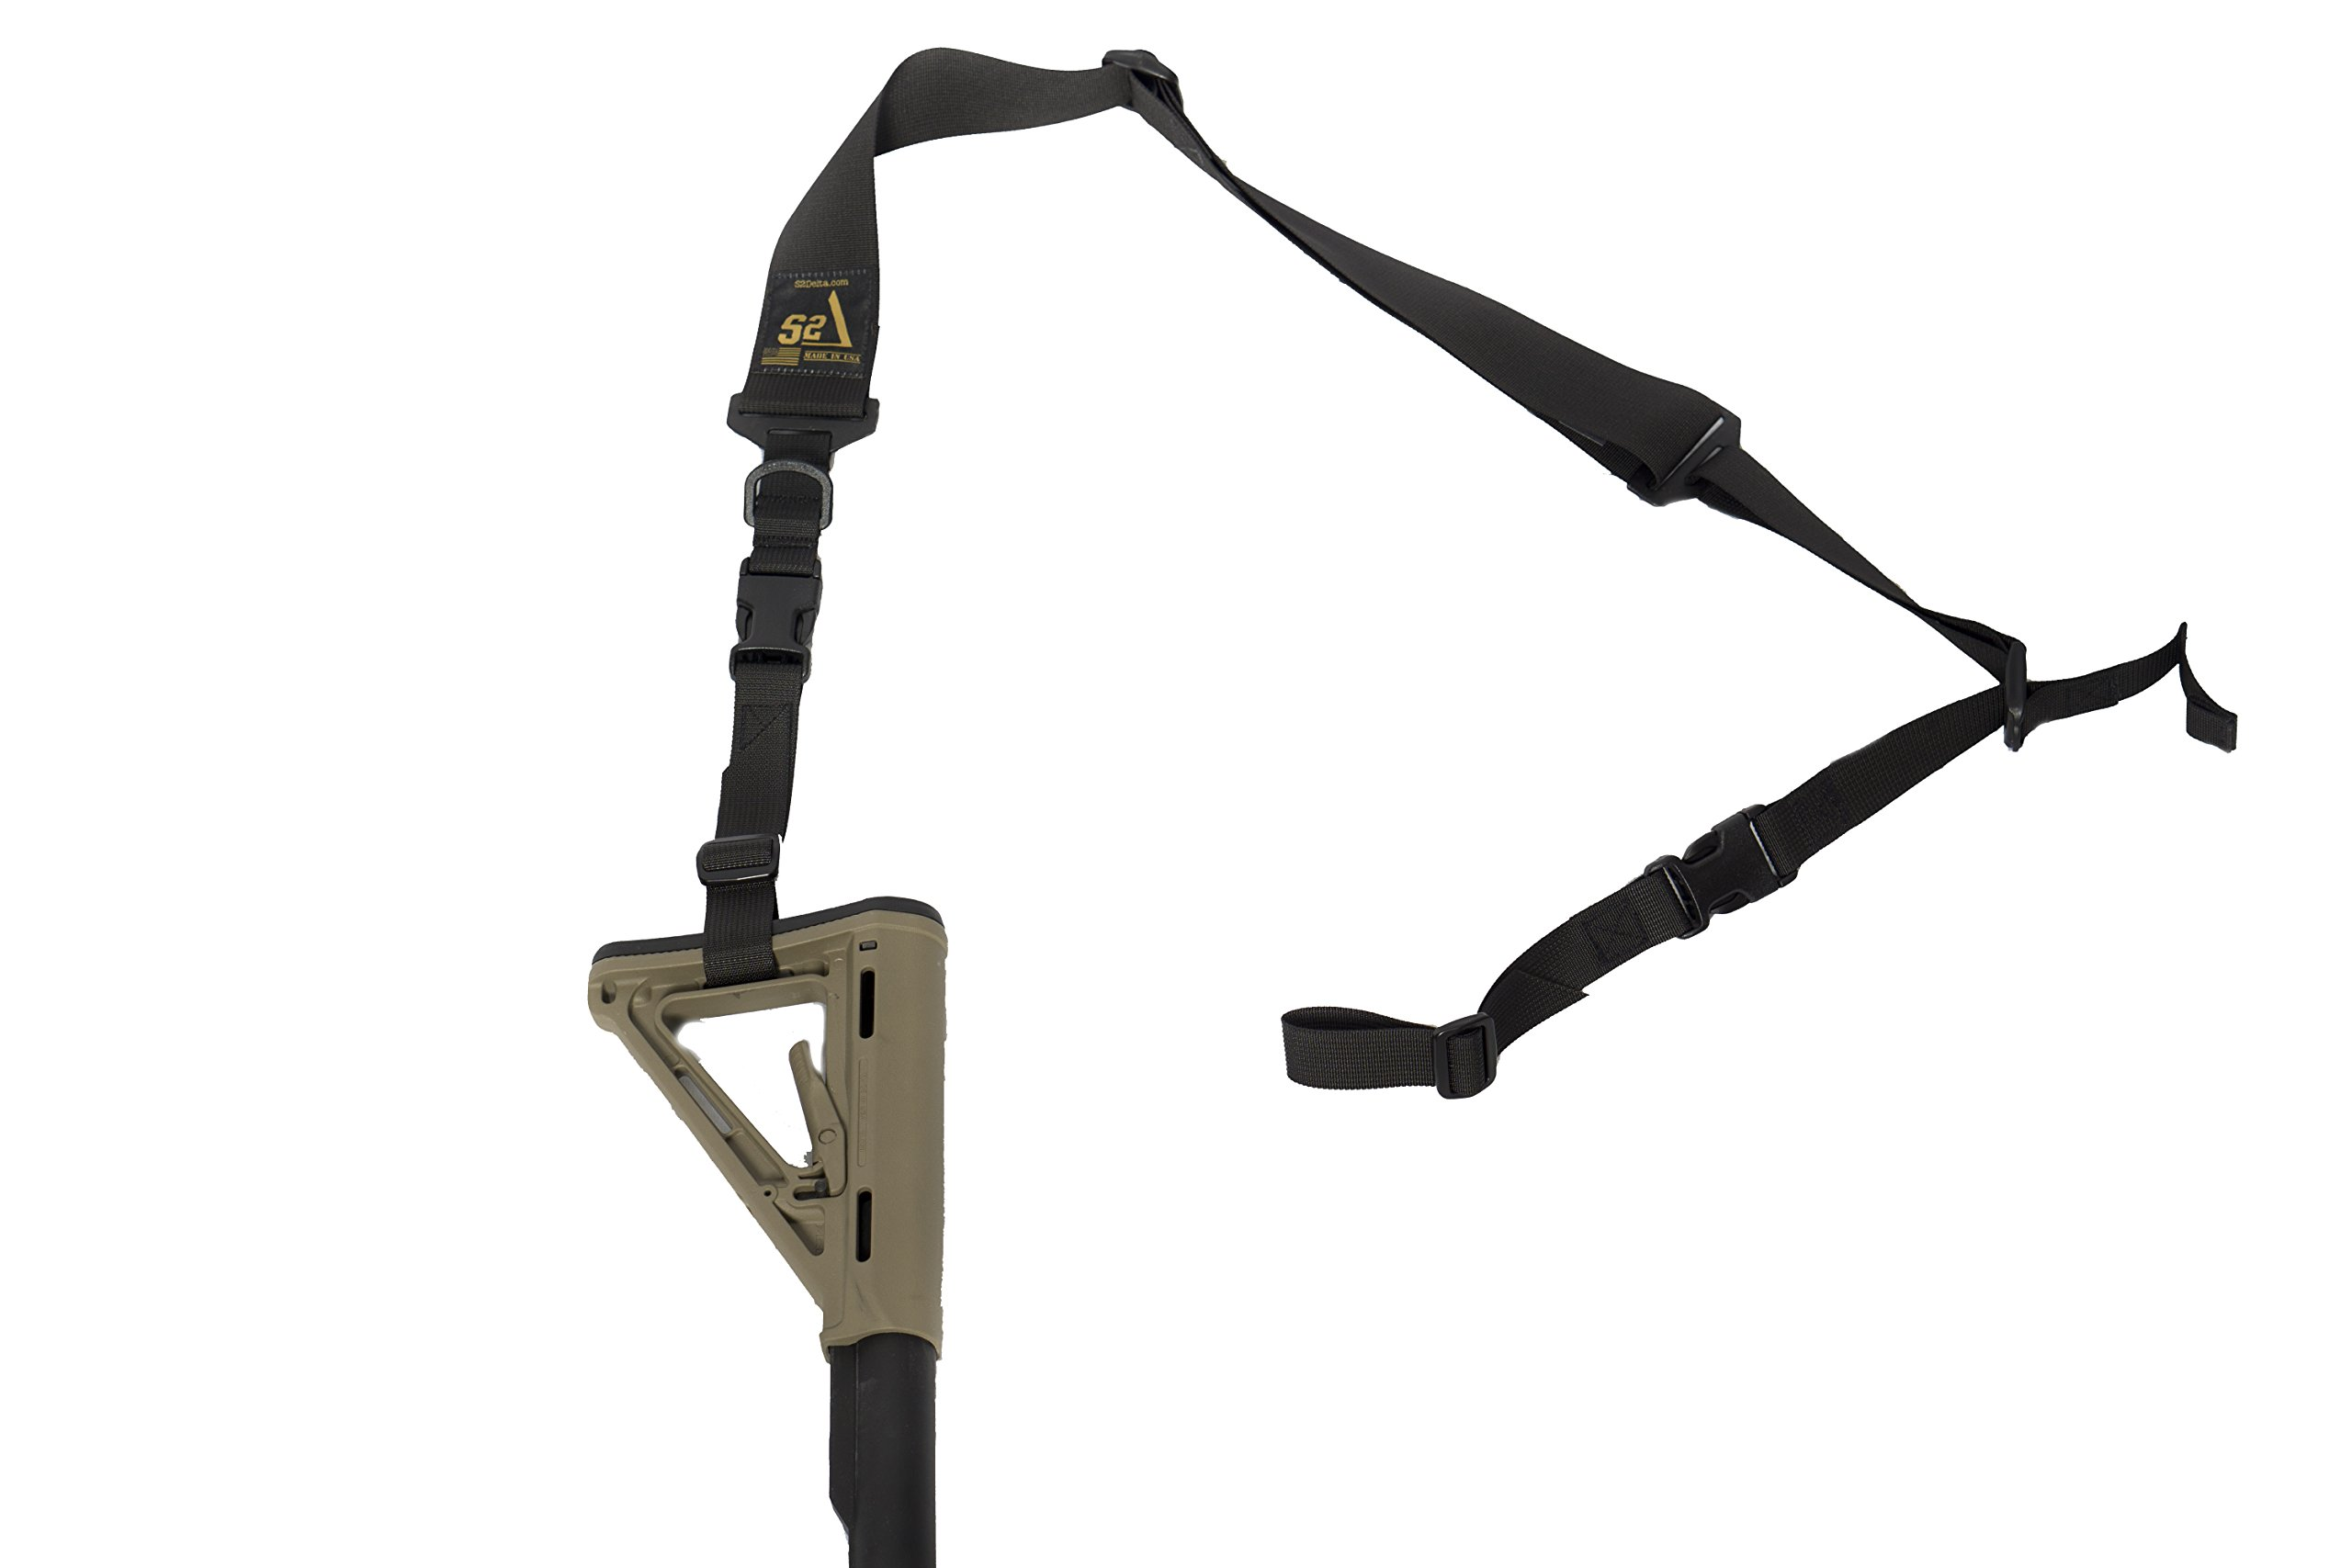 S2Delta - USA Made 2 Point Rifle Sling, Quick Adjustment, Modular Attachment Connections, Comfortable 2'' Wide Shoulder Strap to 1'' Attachment Ends (Black Sling, Pigtail Connector) by S2Delta